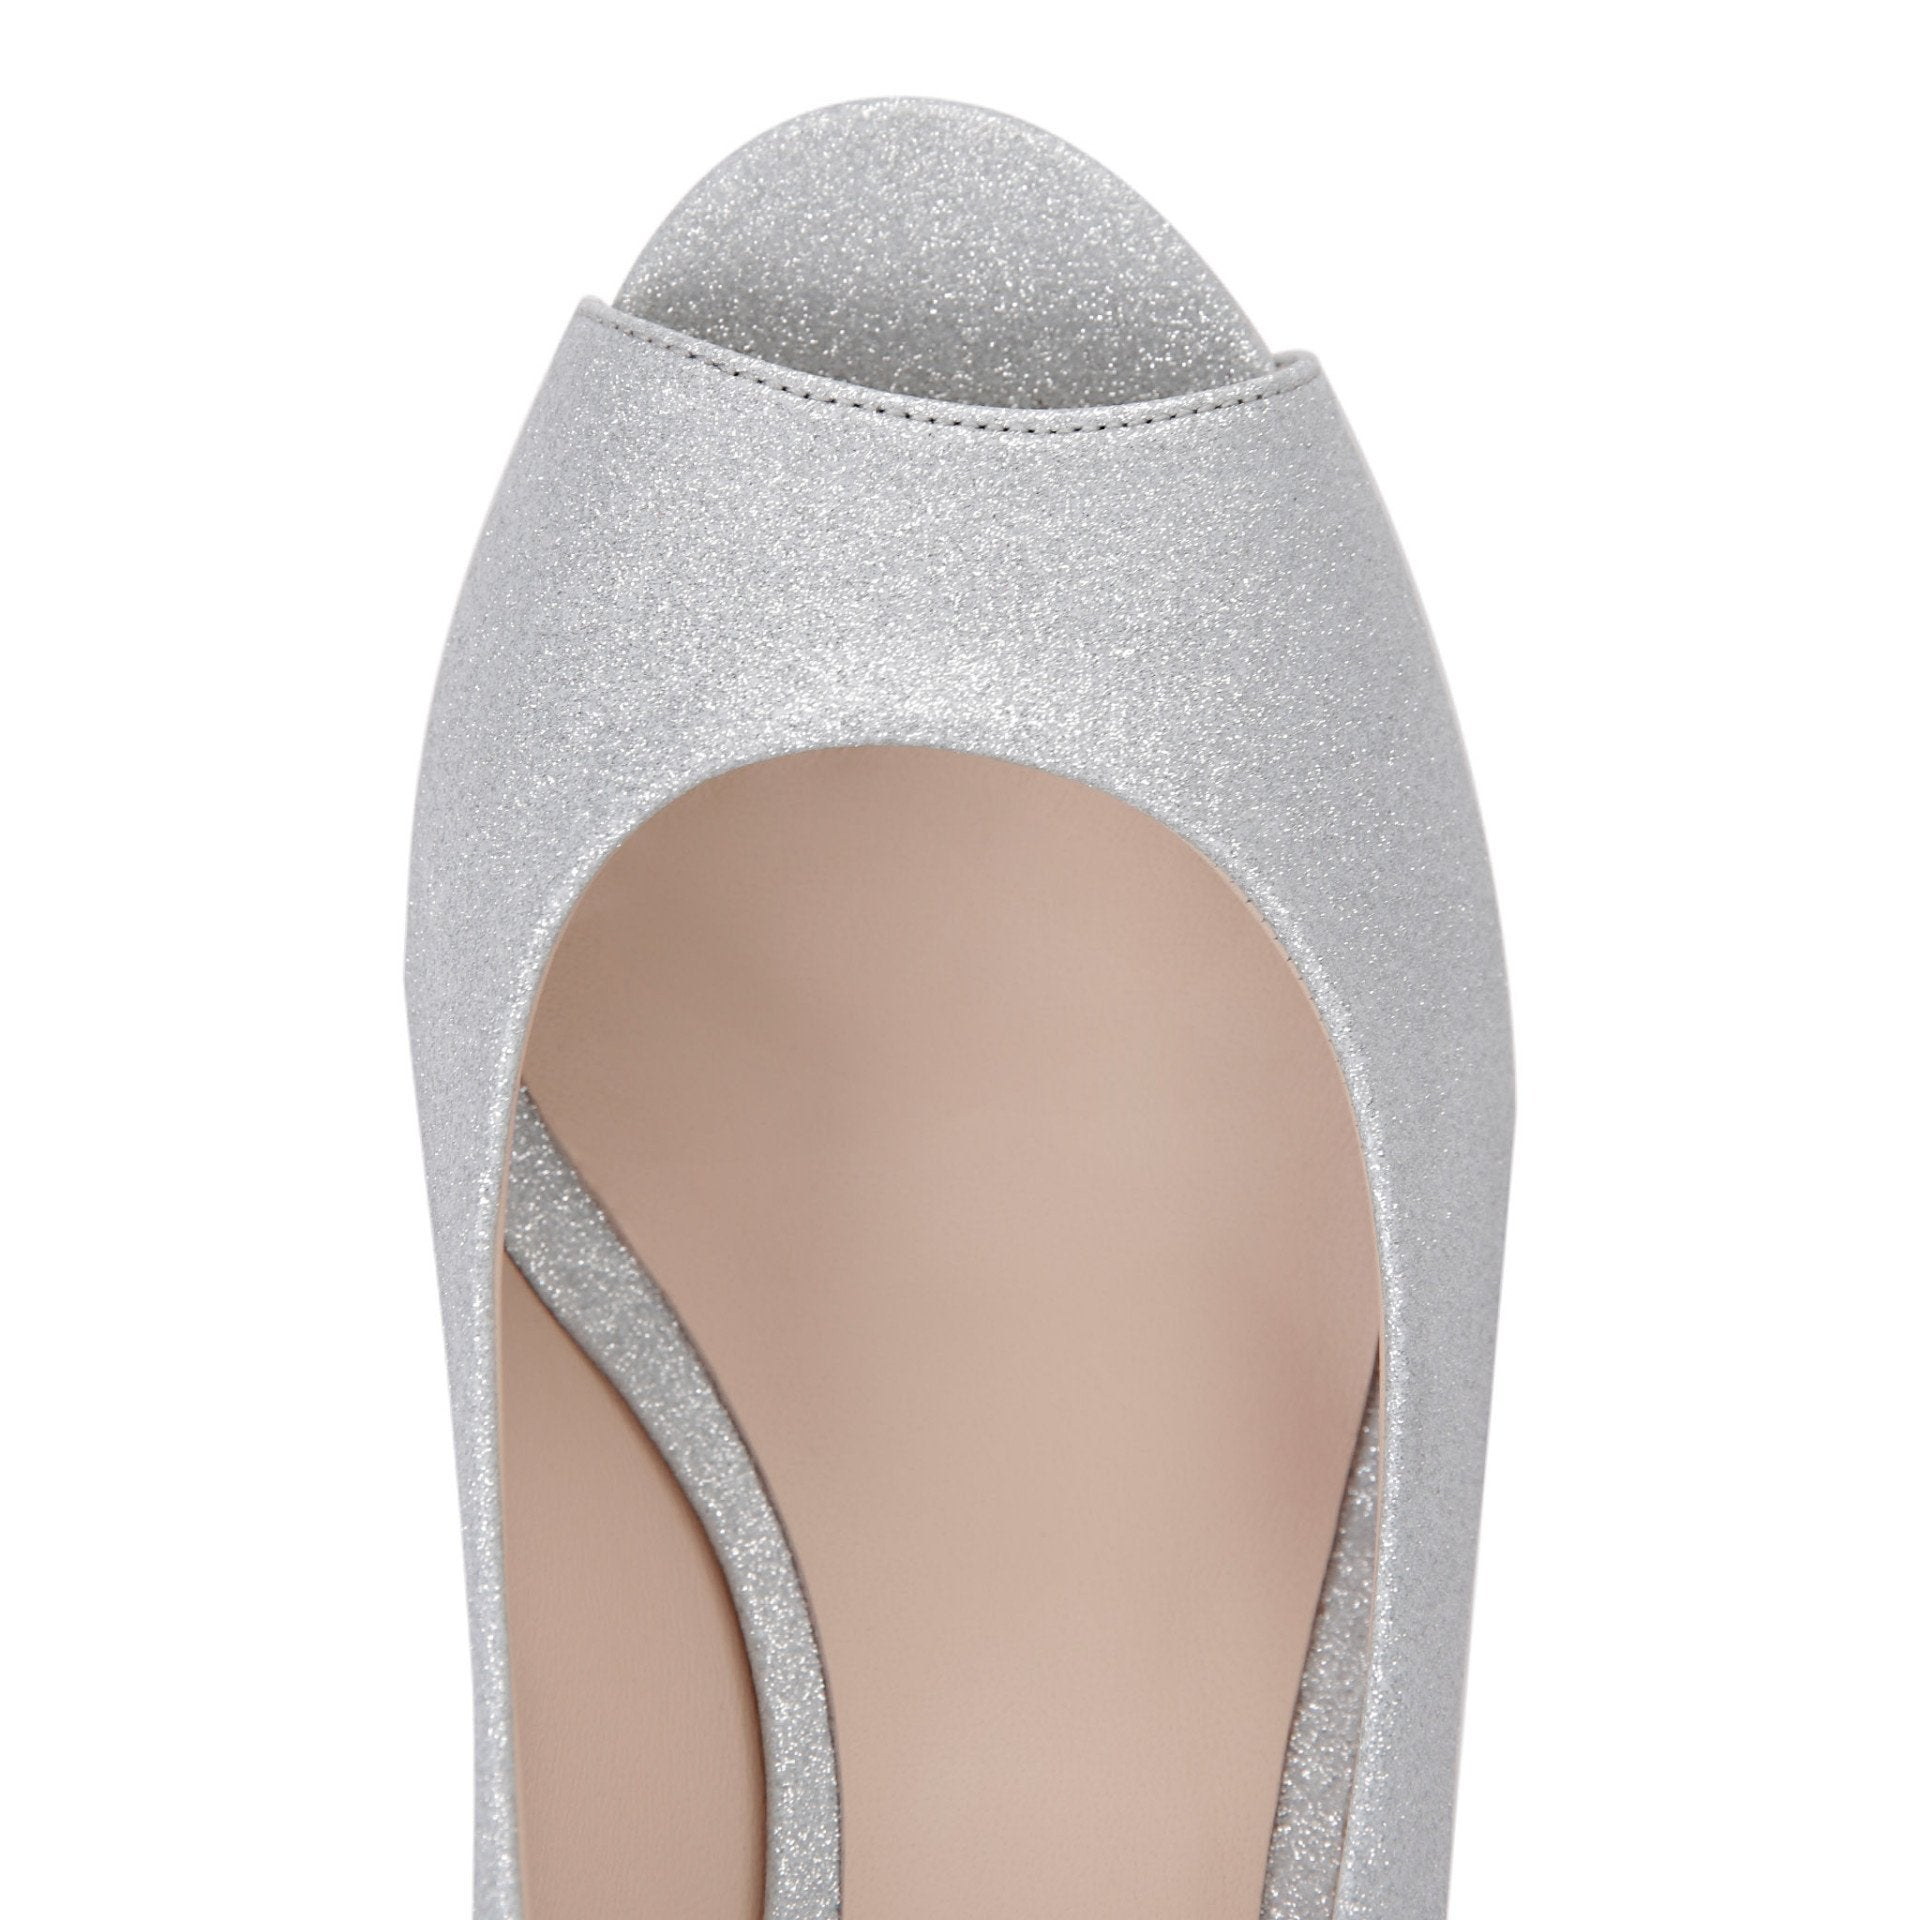 SARDINIA - Bright Argento, VIAJIYU - Women's Hand Made Sustainable Luxury Shoes. Made in Italy. Made to Order.